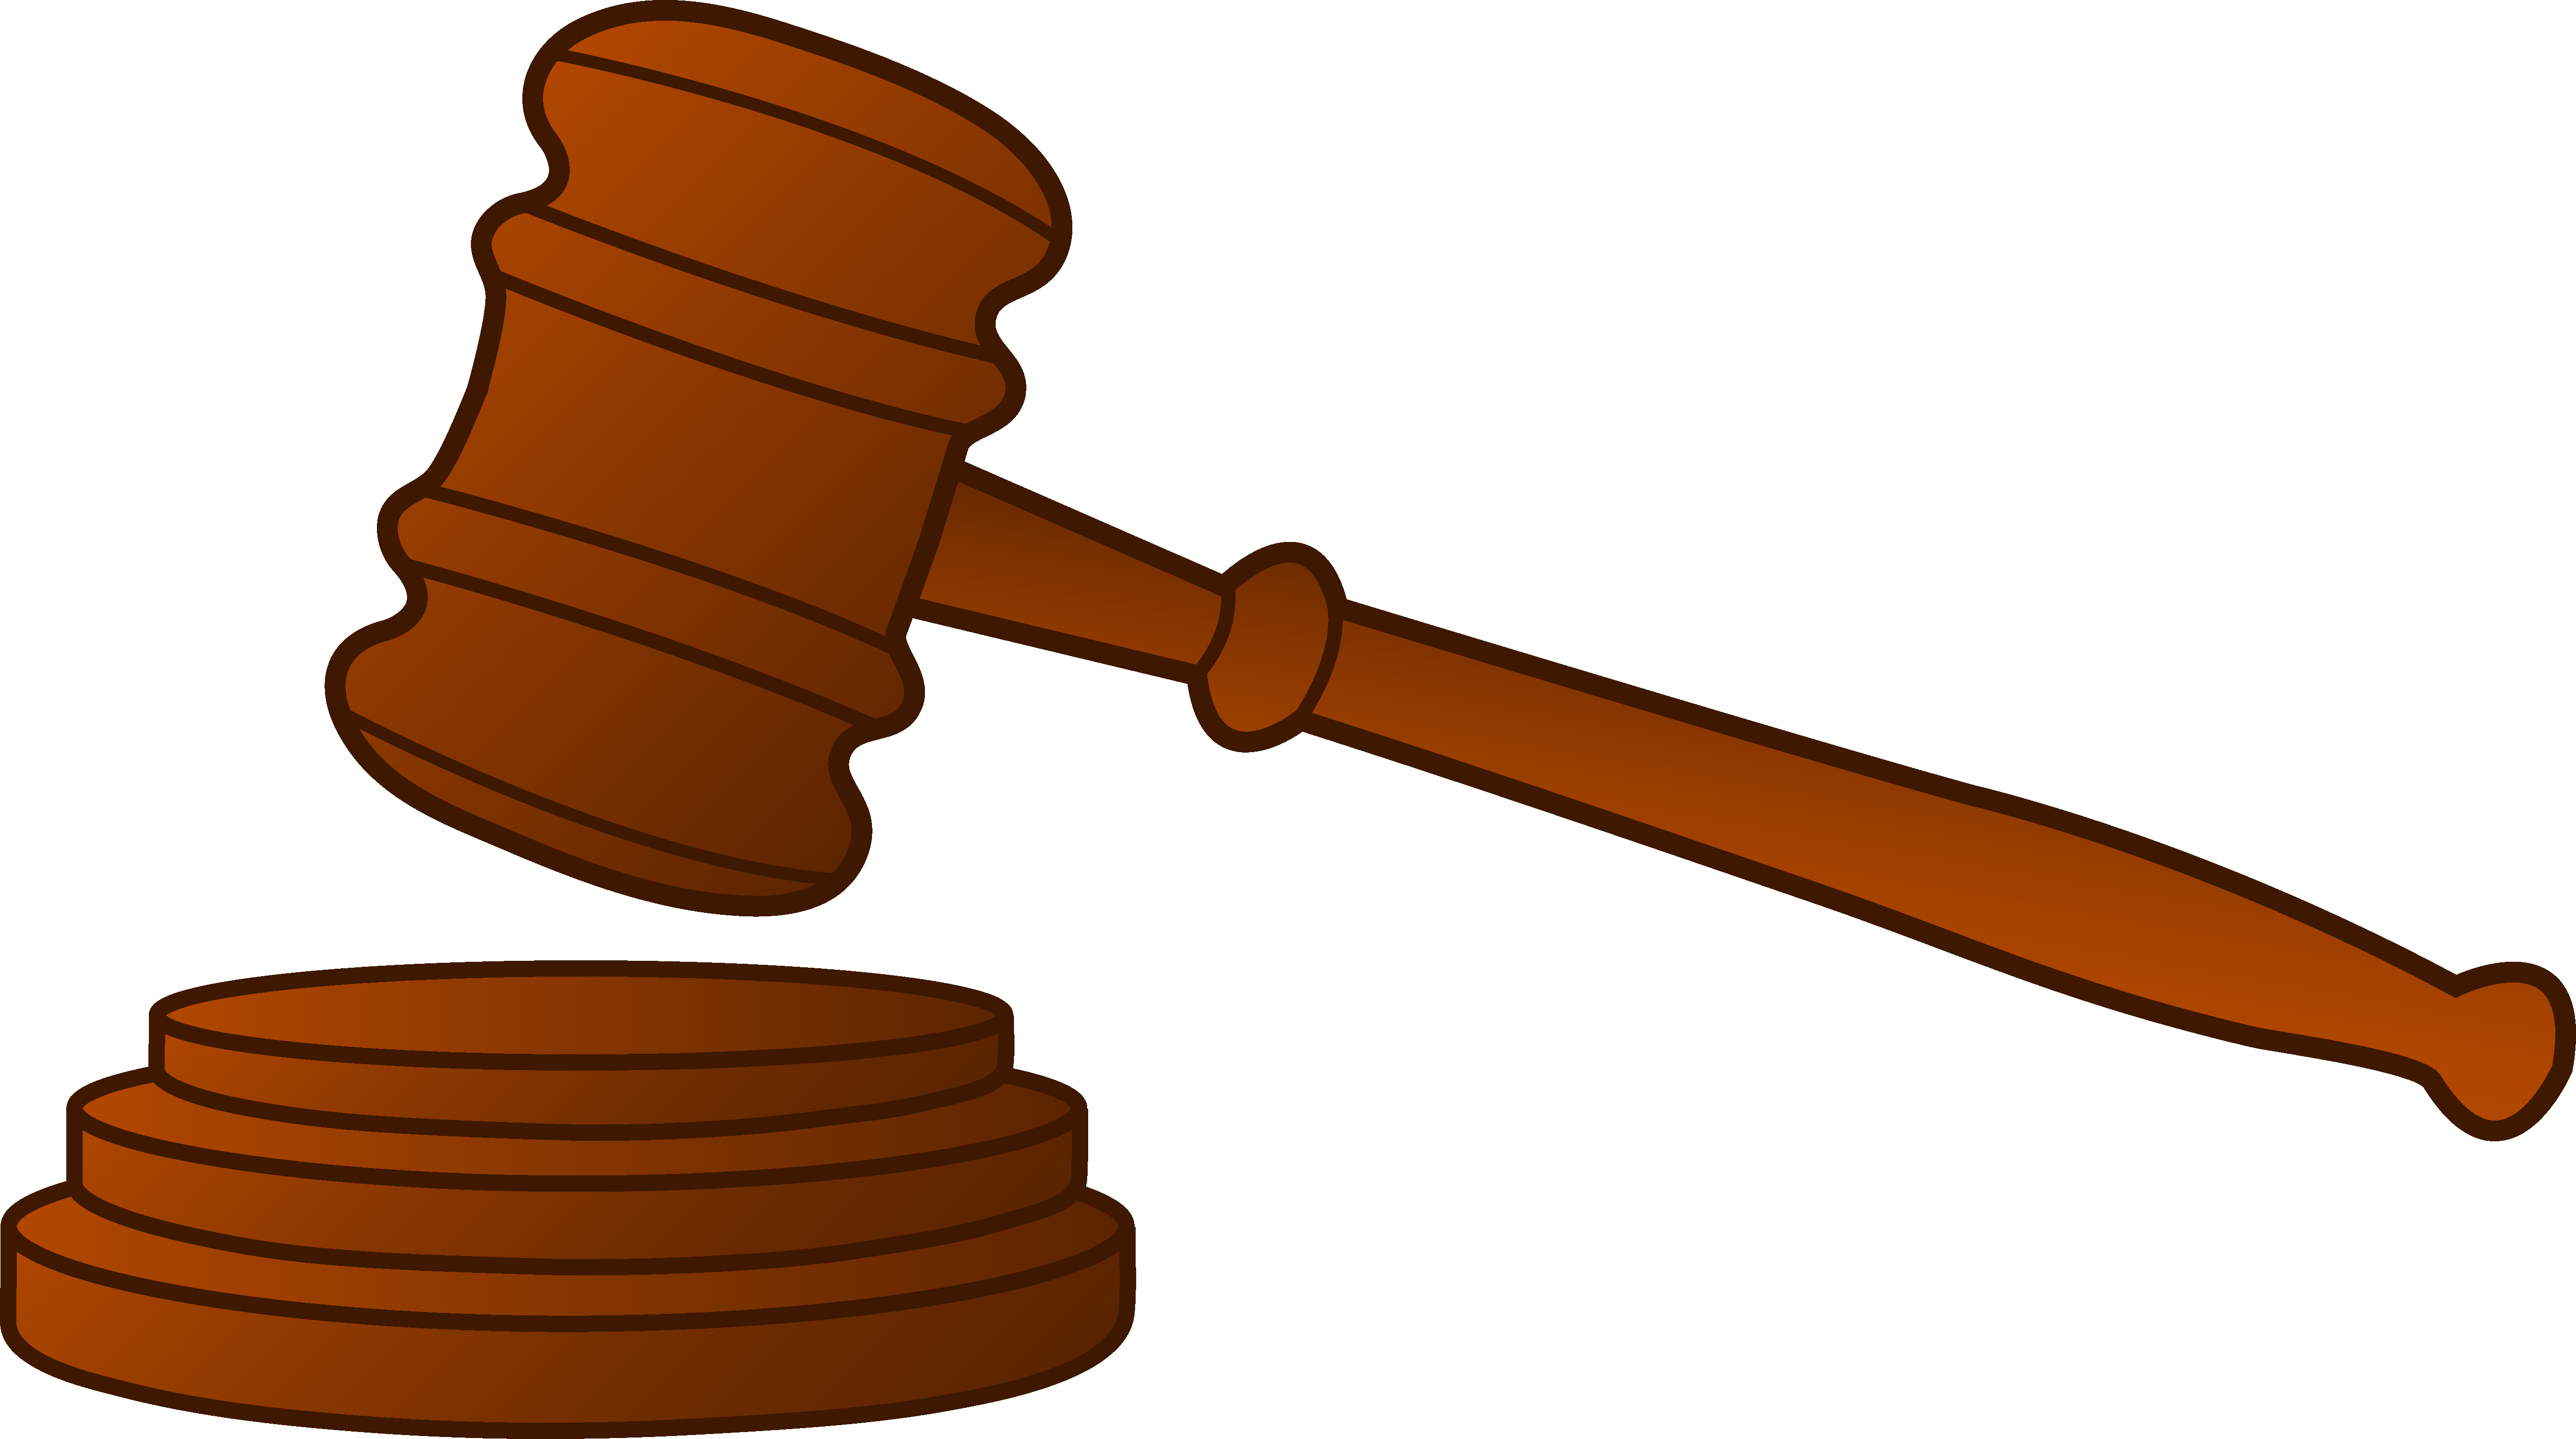 Law gavel cliparts free. Clipart hammer courtroom